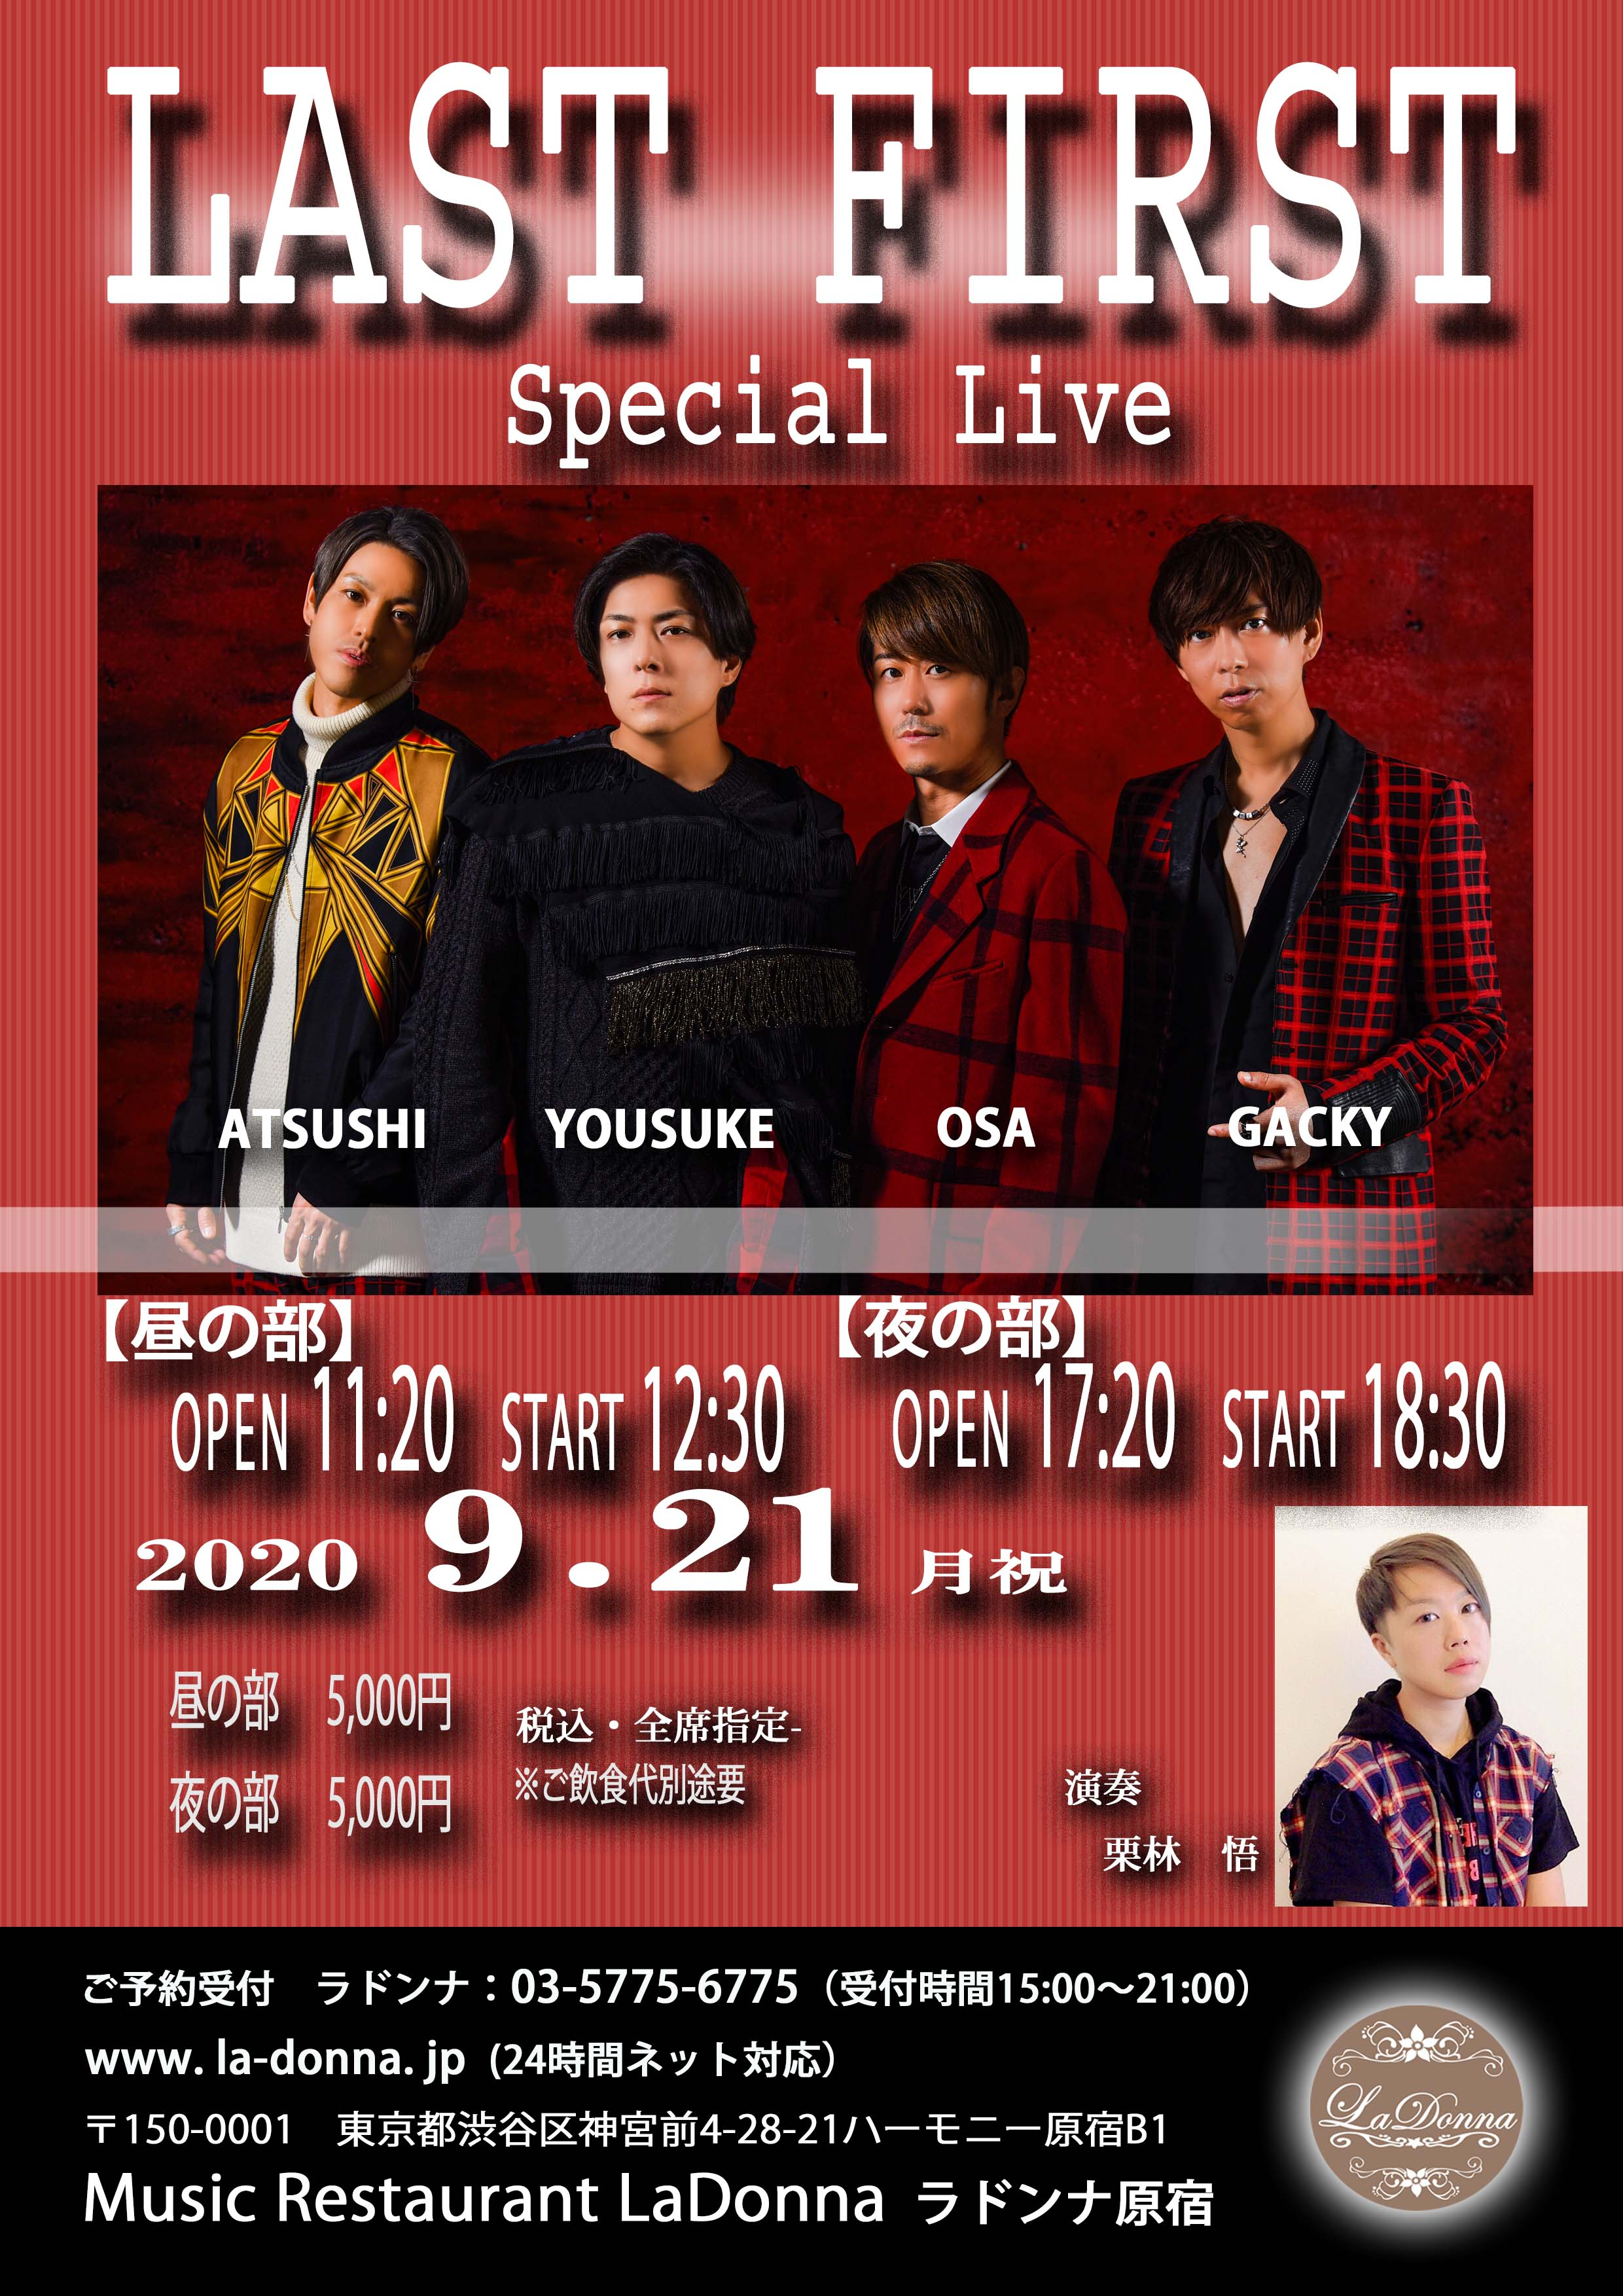 LAST FIRST Special Live 『LAST FIRST 2020 五大都市ツアー』 東京公演